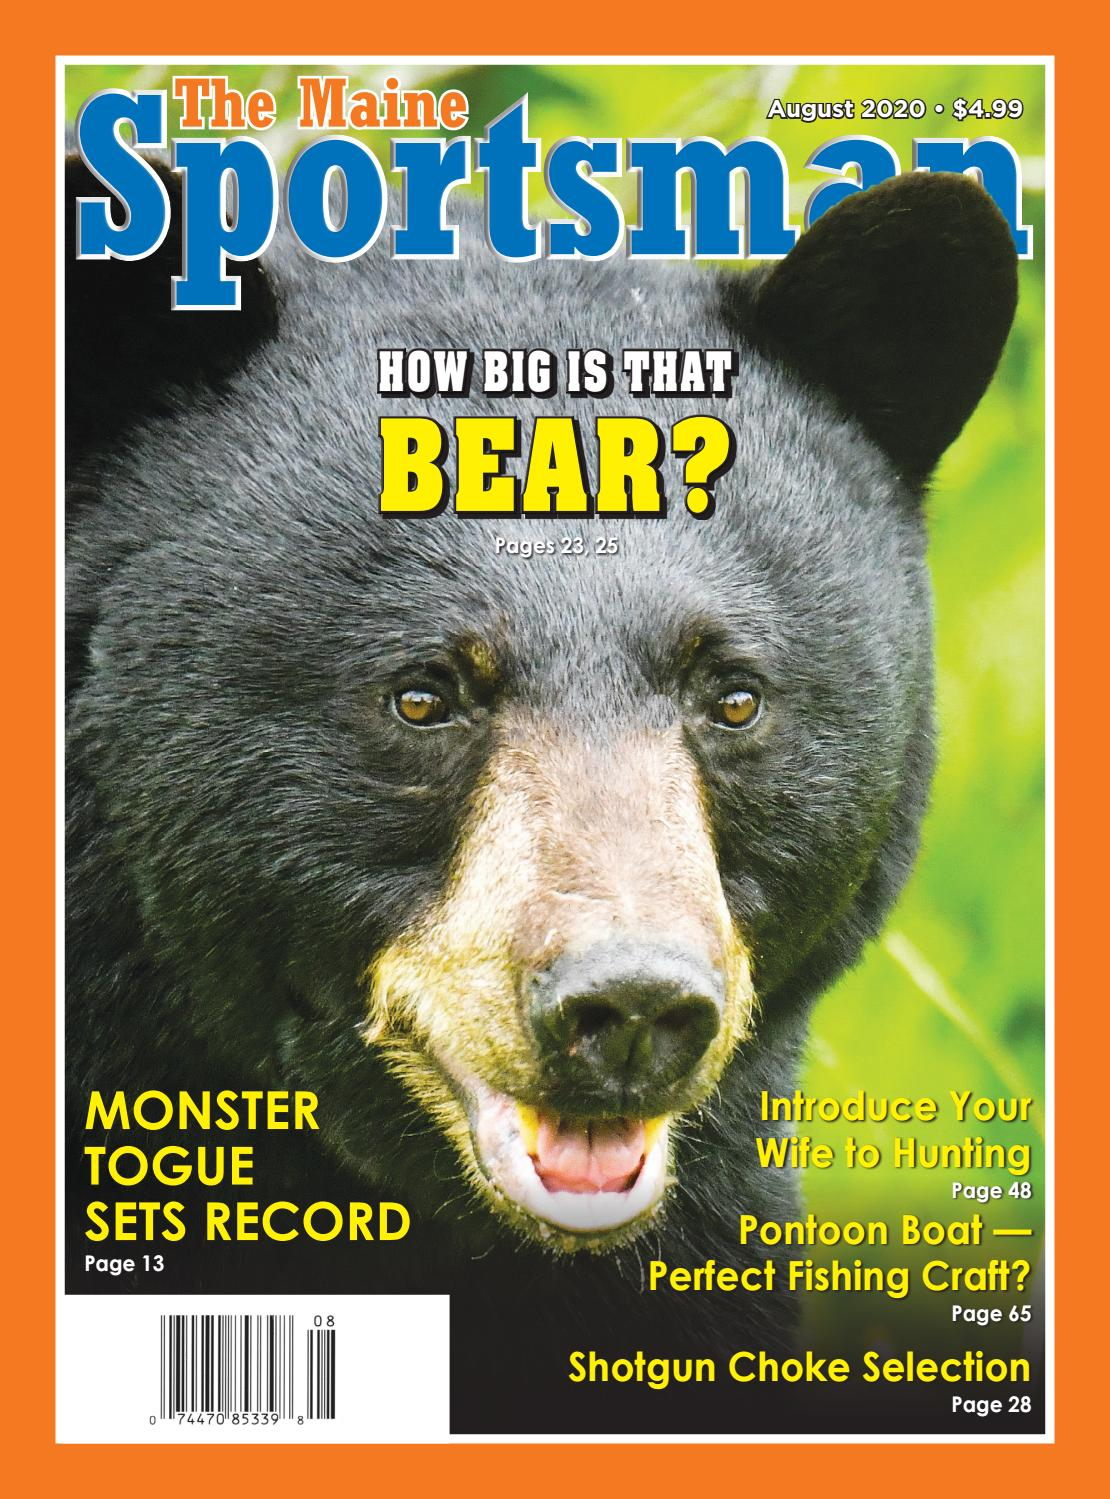 The Maine Sportsman August 2020 Digital Edition By The Maine Sportsman Digital Edition Issuu